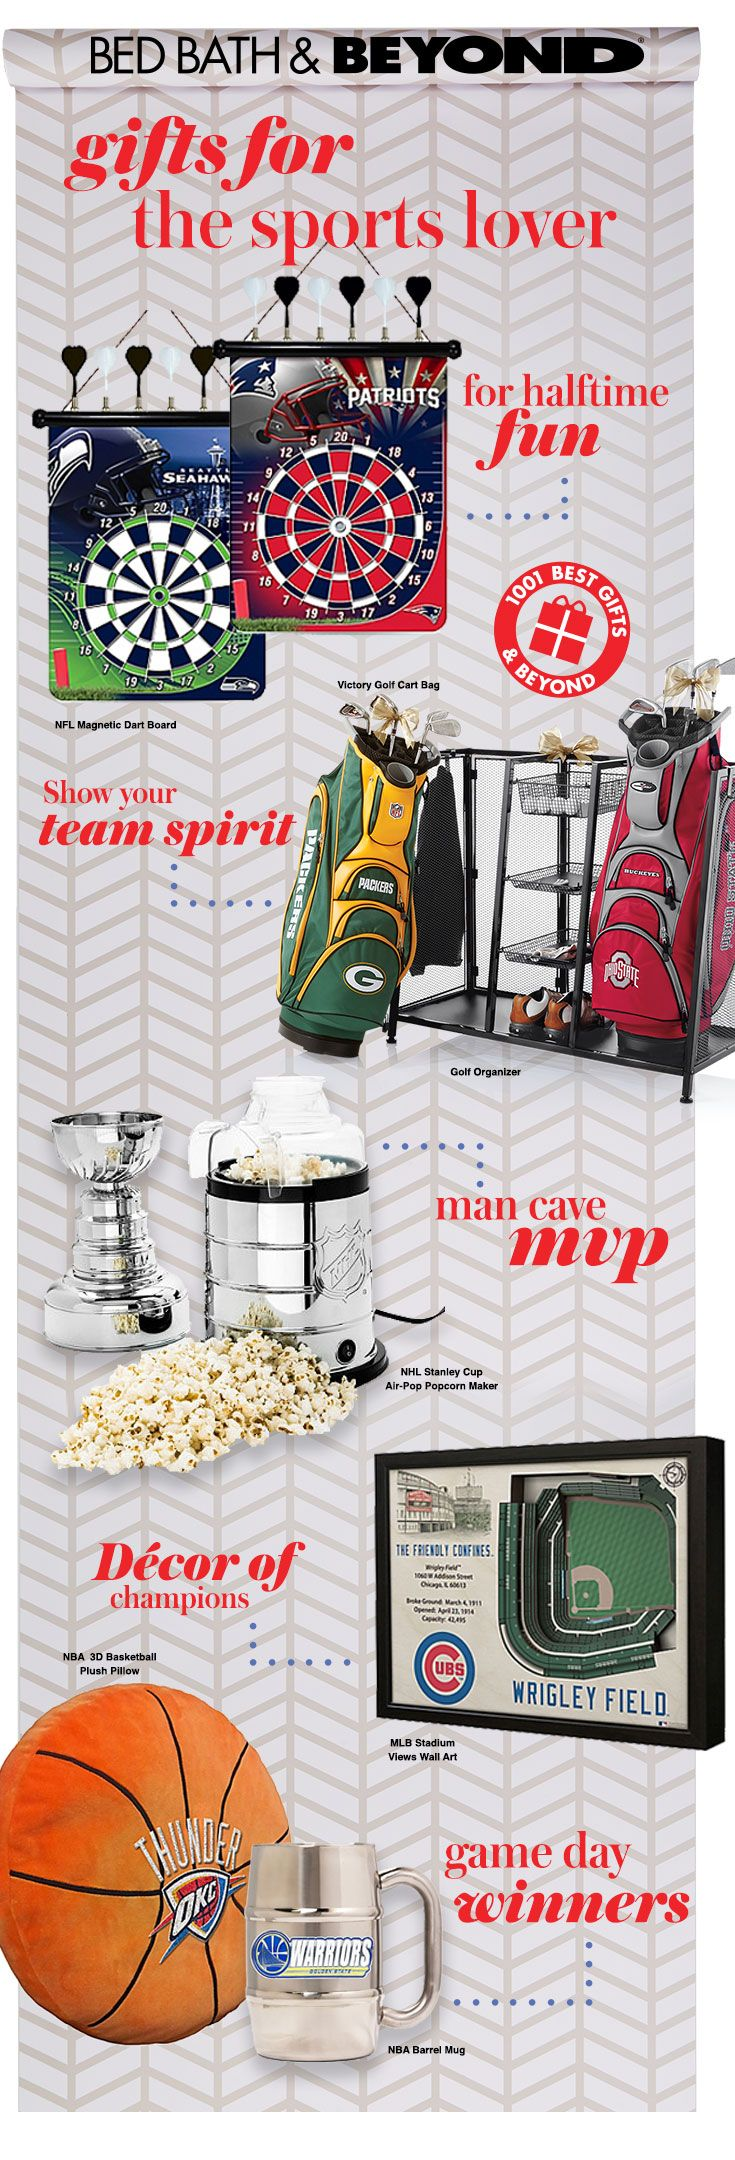 Lori greiner jewelry box bed bath and beyond - Go Fight Win At Gift Giving This Season With Gifts For The Sports Fan